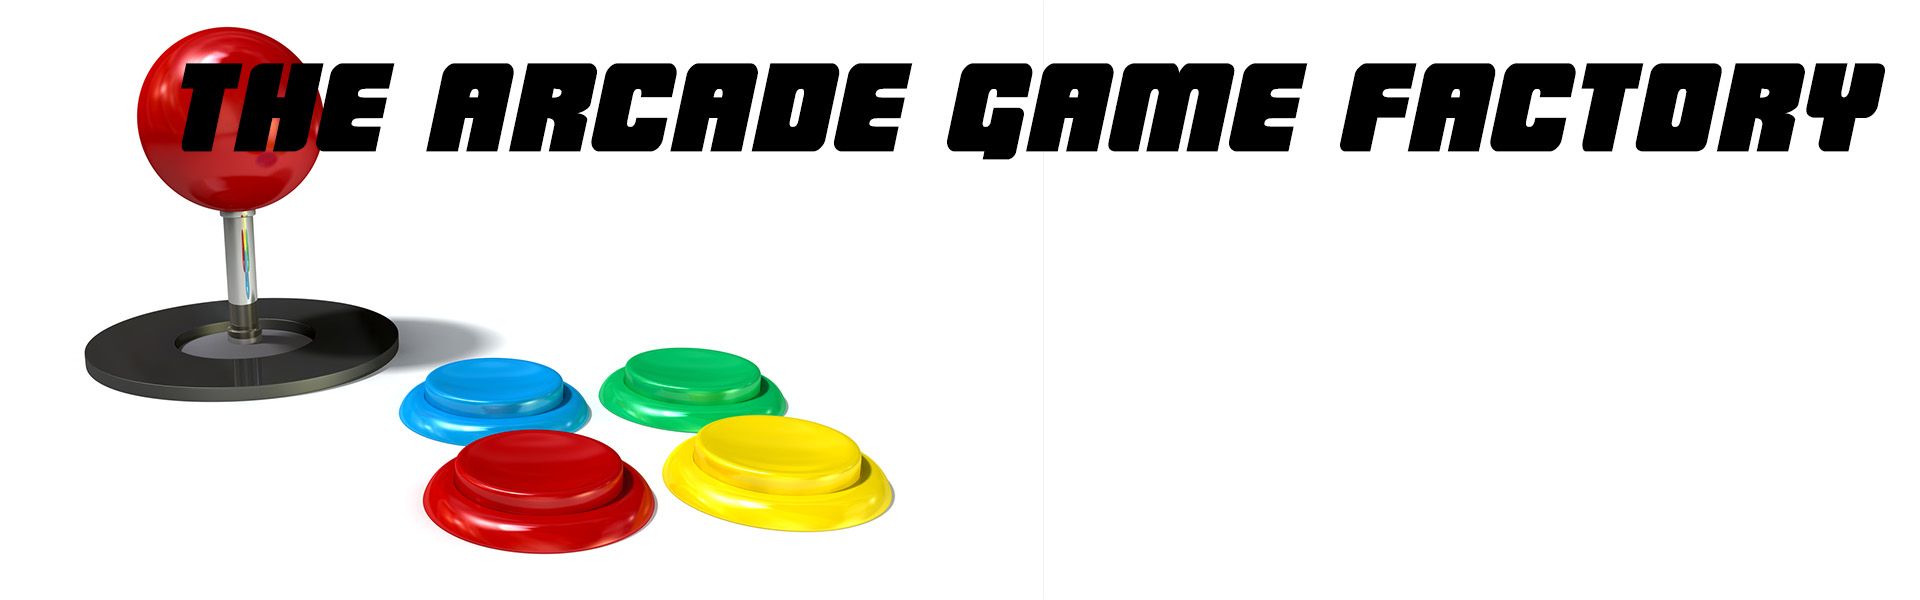 Welcome to the Arcade Game Factory!